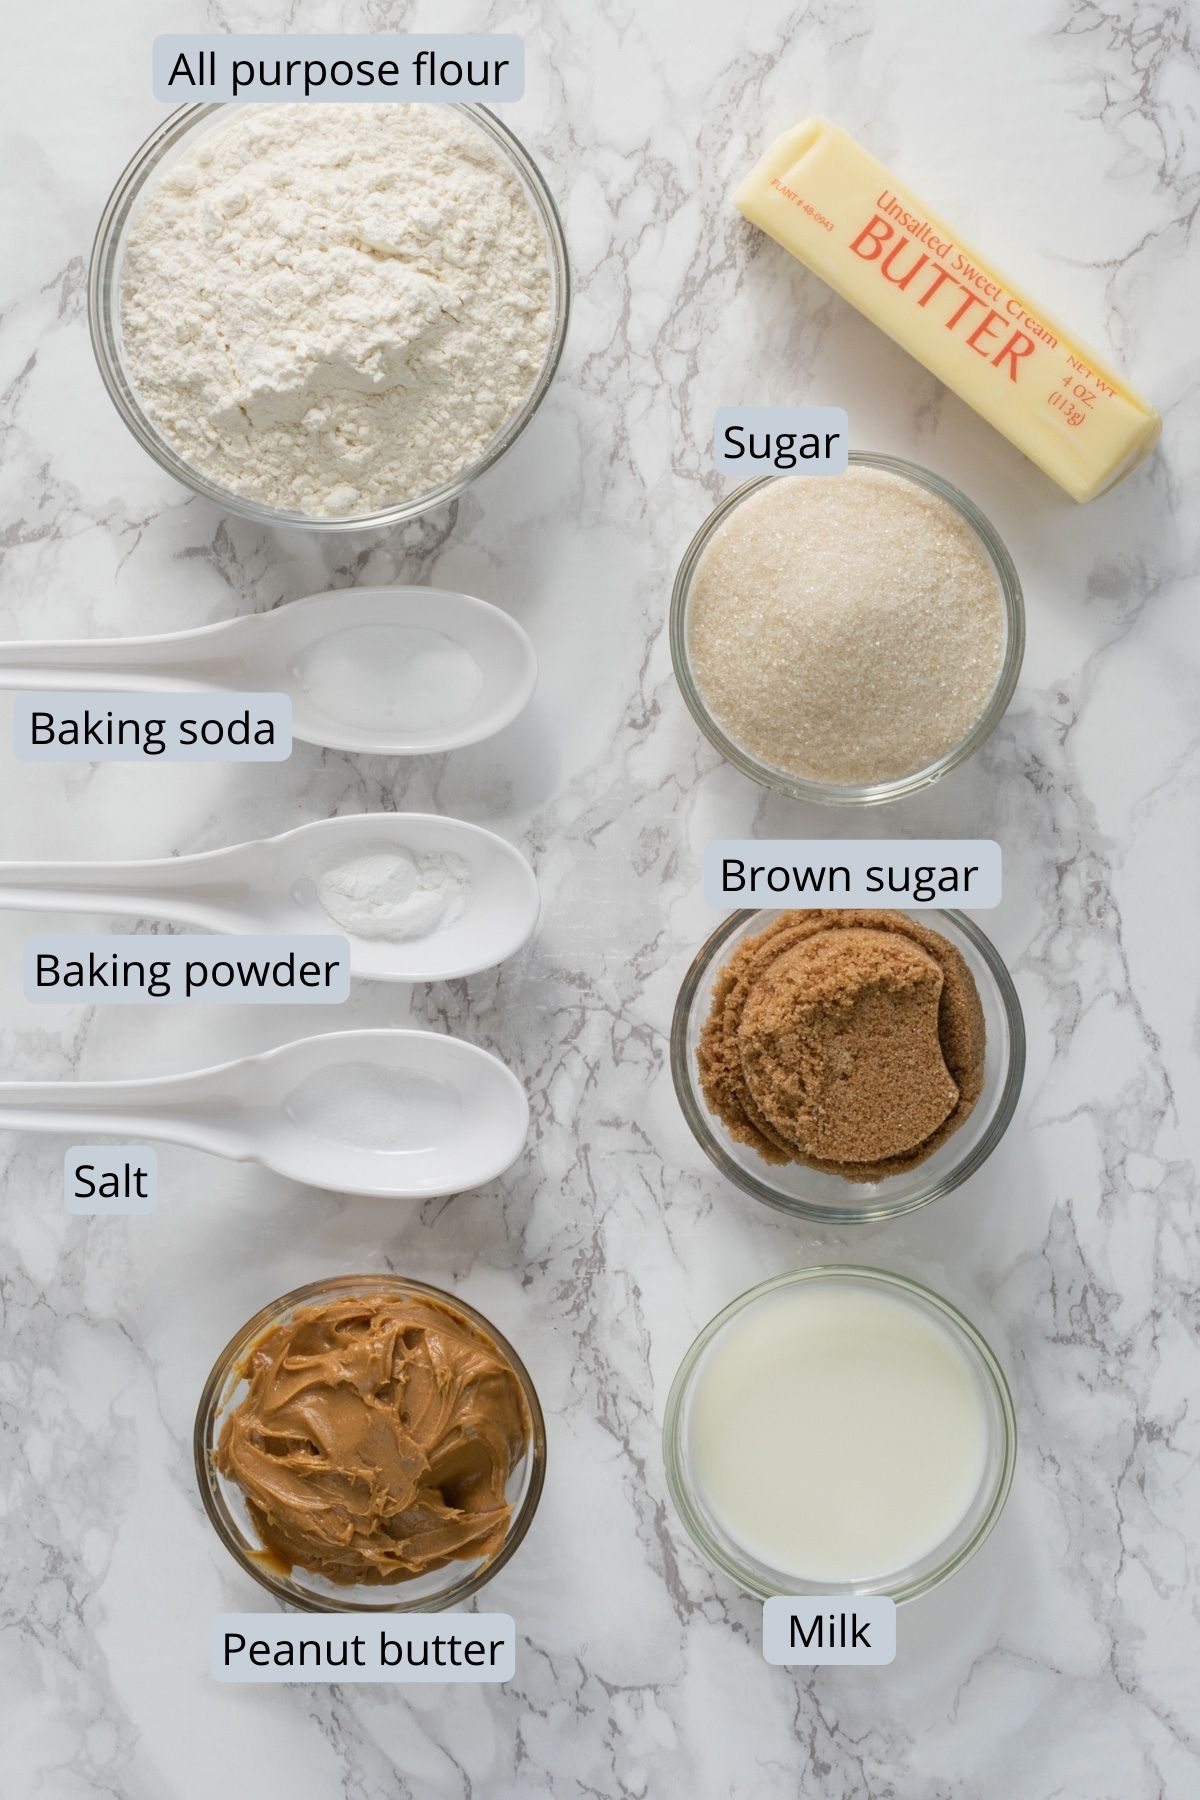 Ingredients used for eggless peanut butter cookies in individual bowls and spoons.